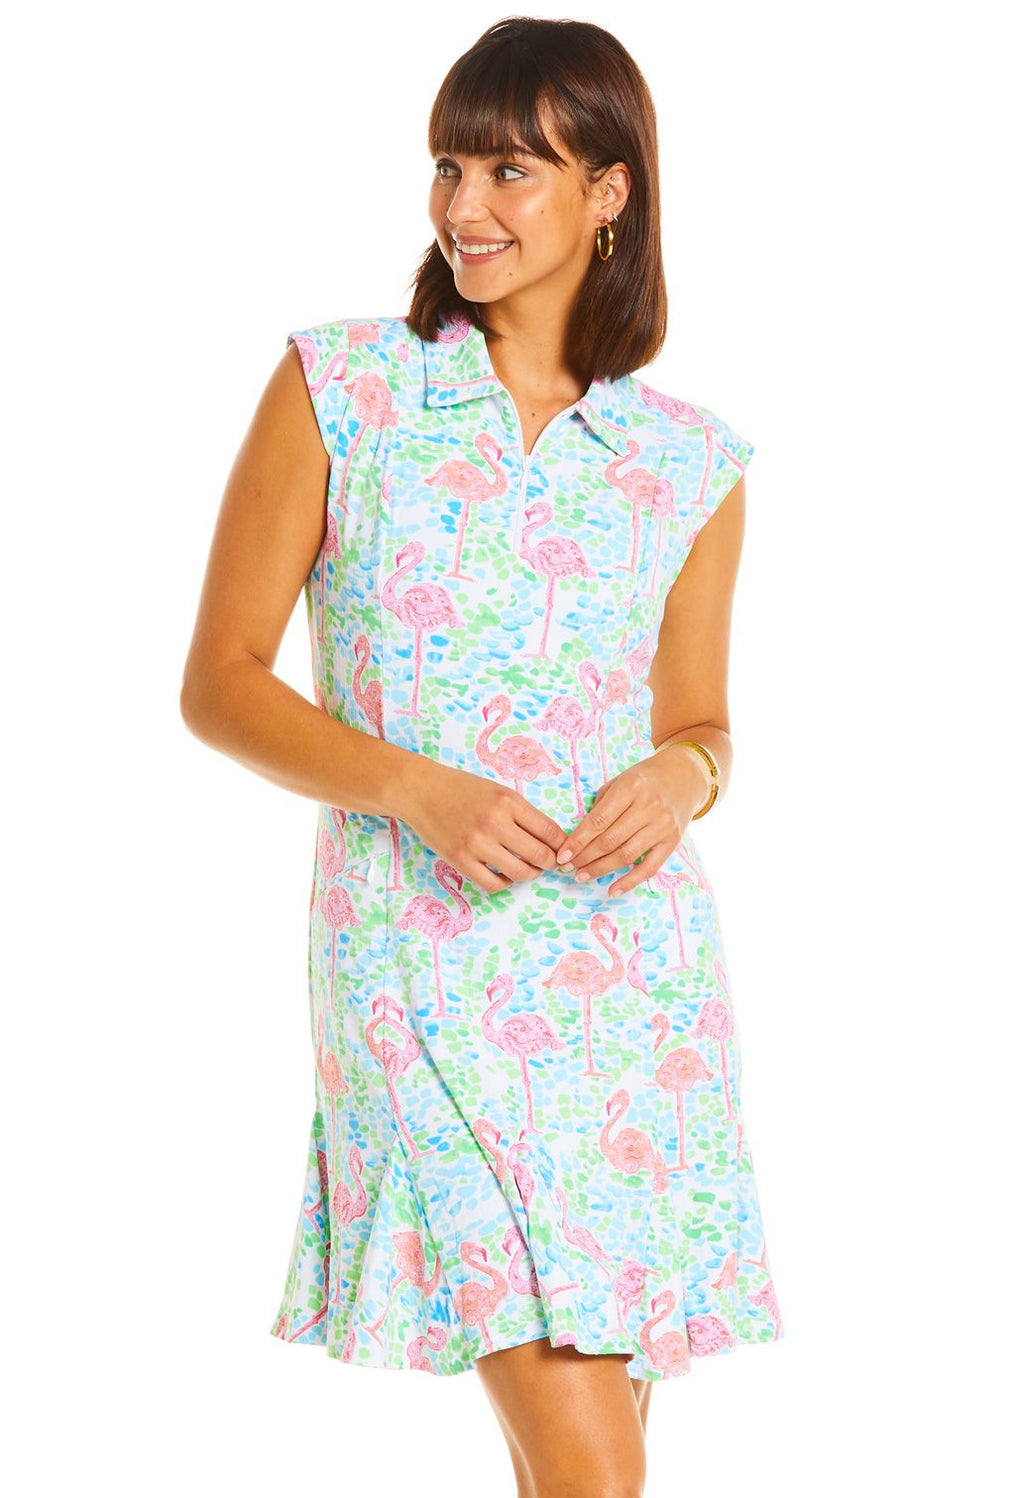 Ibkul  Sleeveless Polo Dress Flamingo Turquoise/ Pink - SPF 50